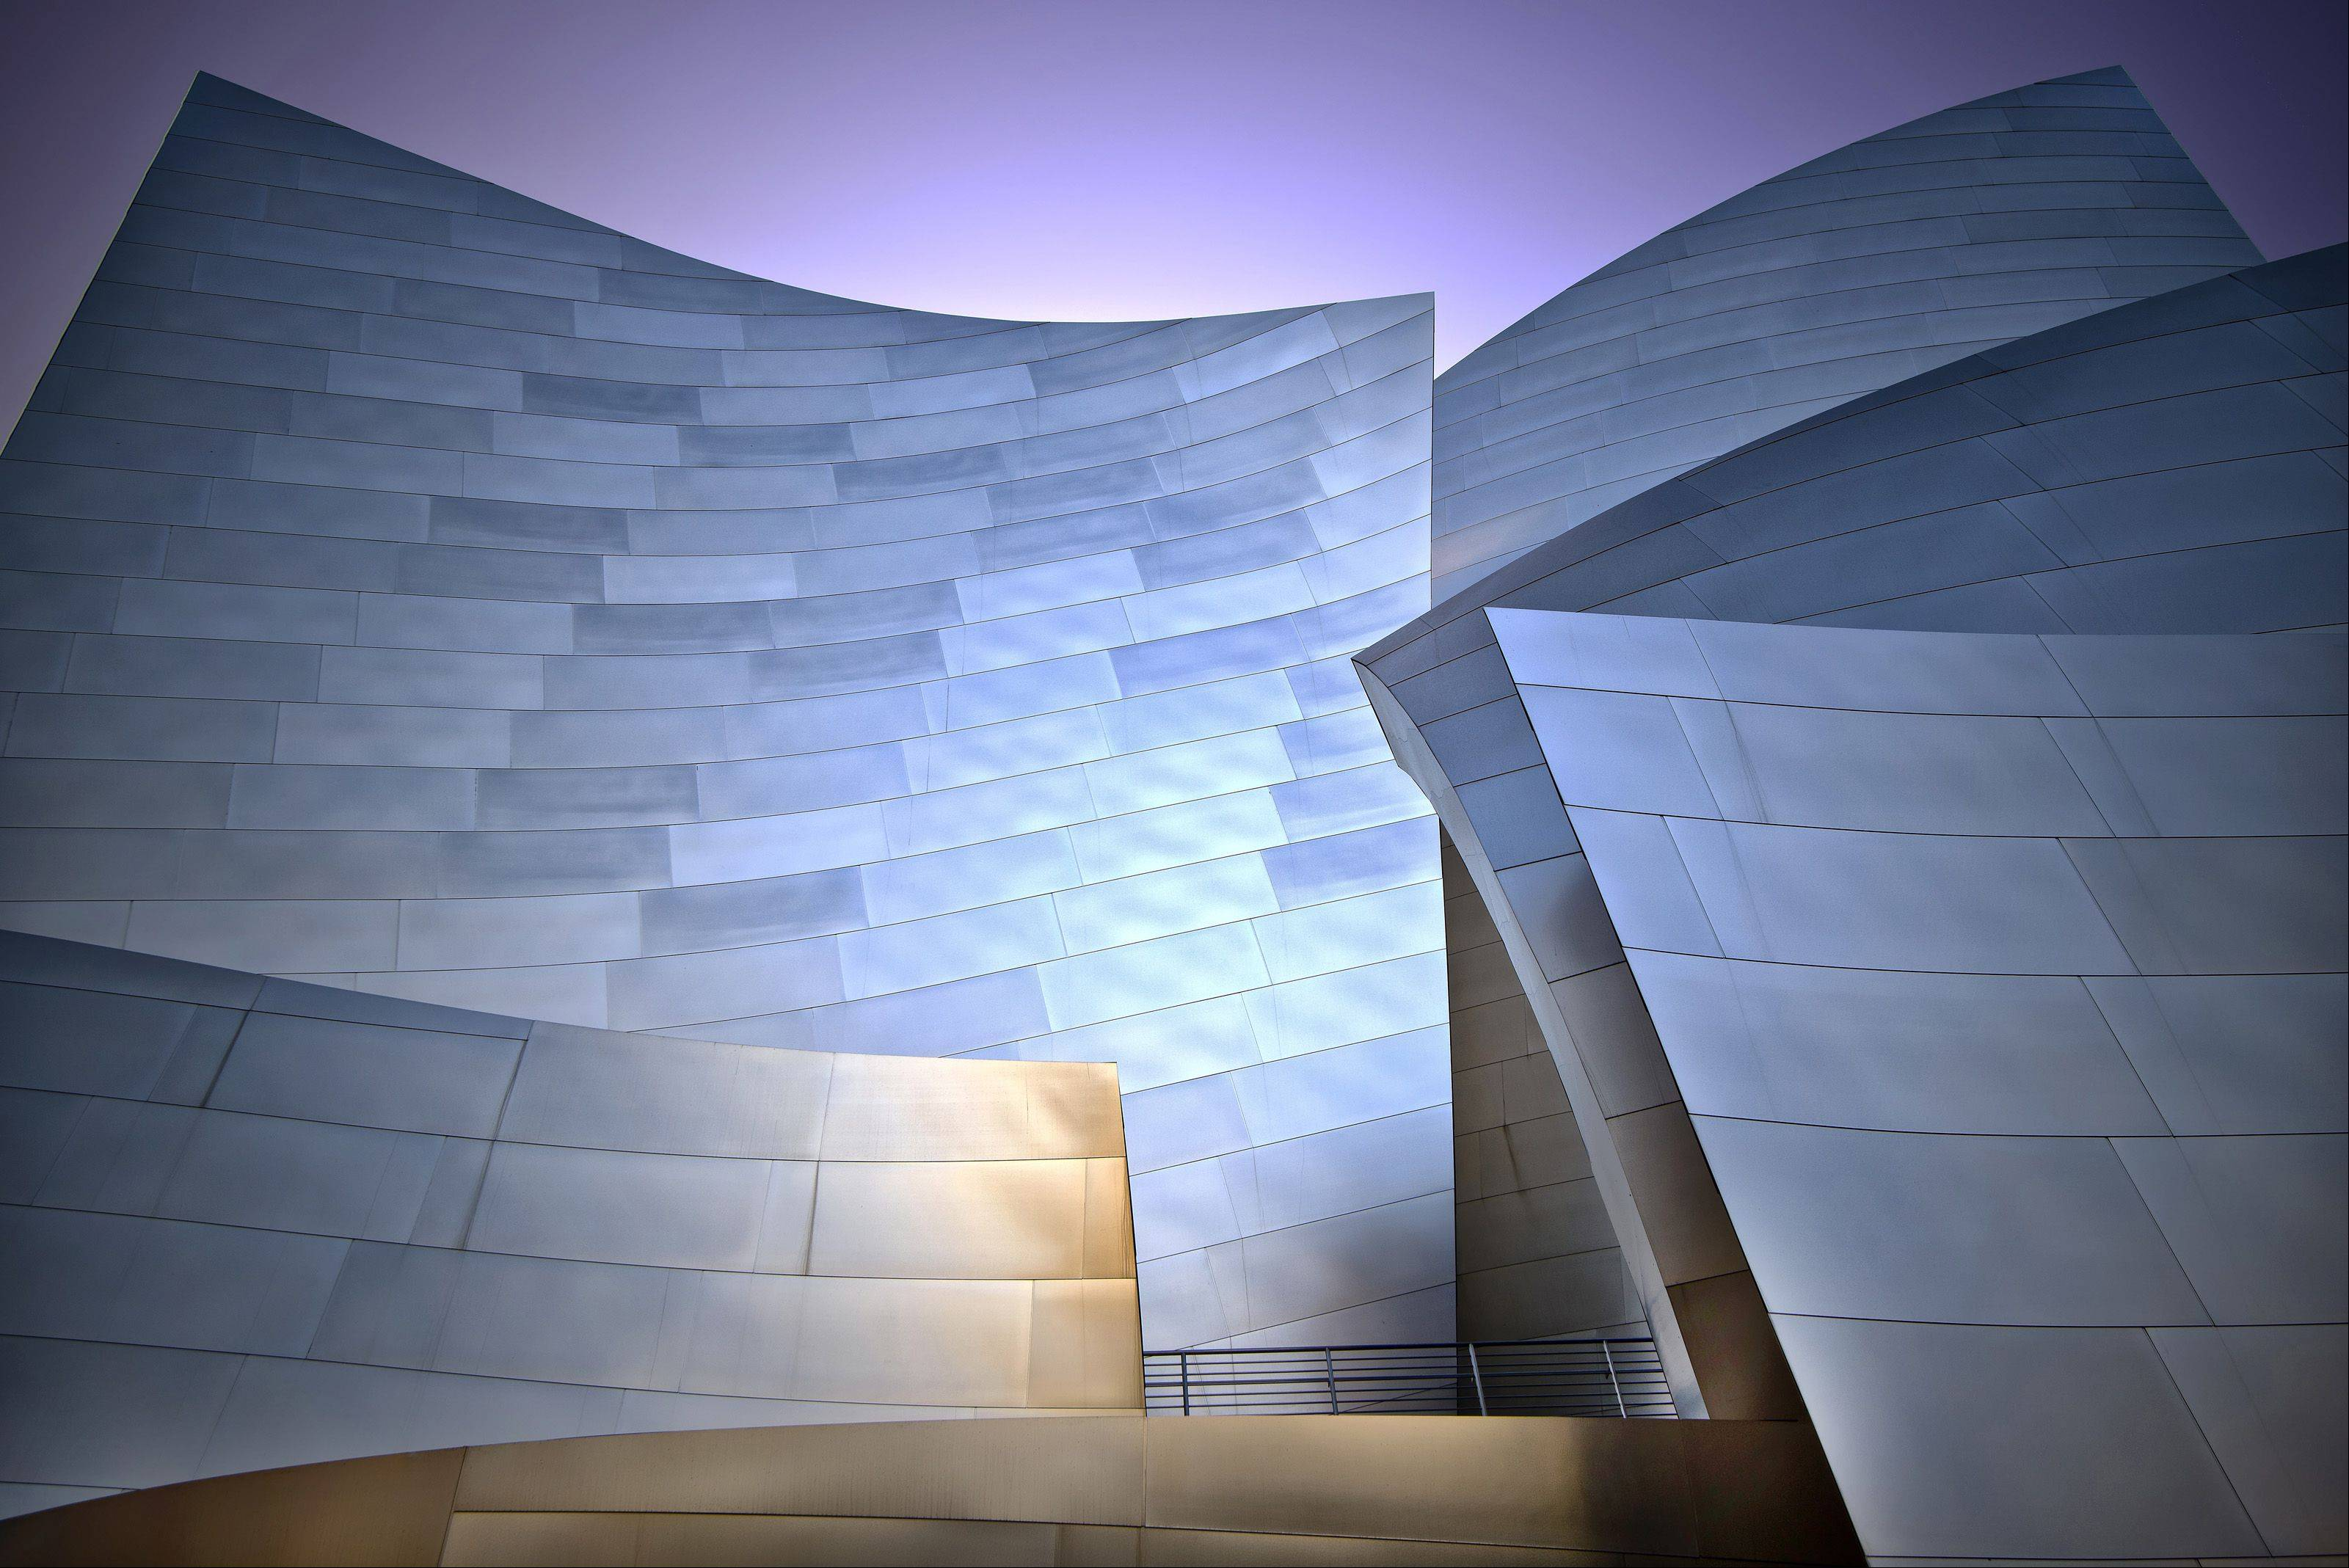 This is The Walt Disney Concert Hall is in Los Angeles. It's an intriguing metallic structure with lots of surfaces and angles. It is also the home of the Los Angeles Philharmonic Orchestra.